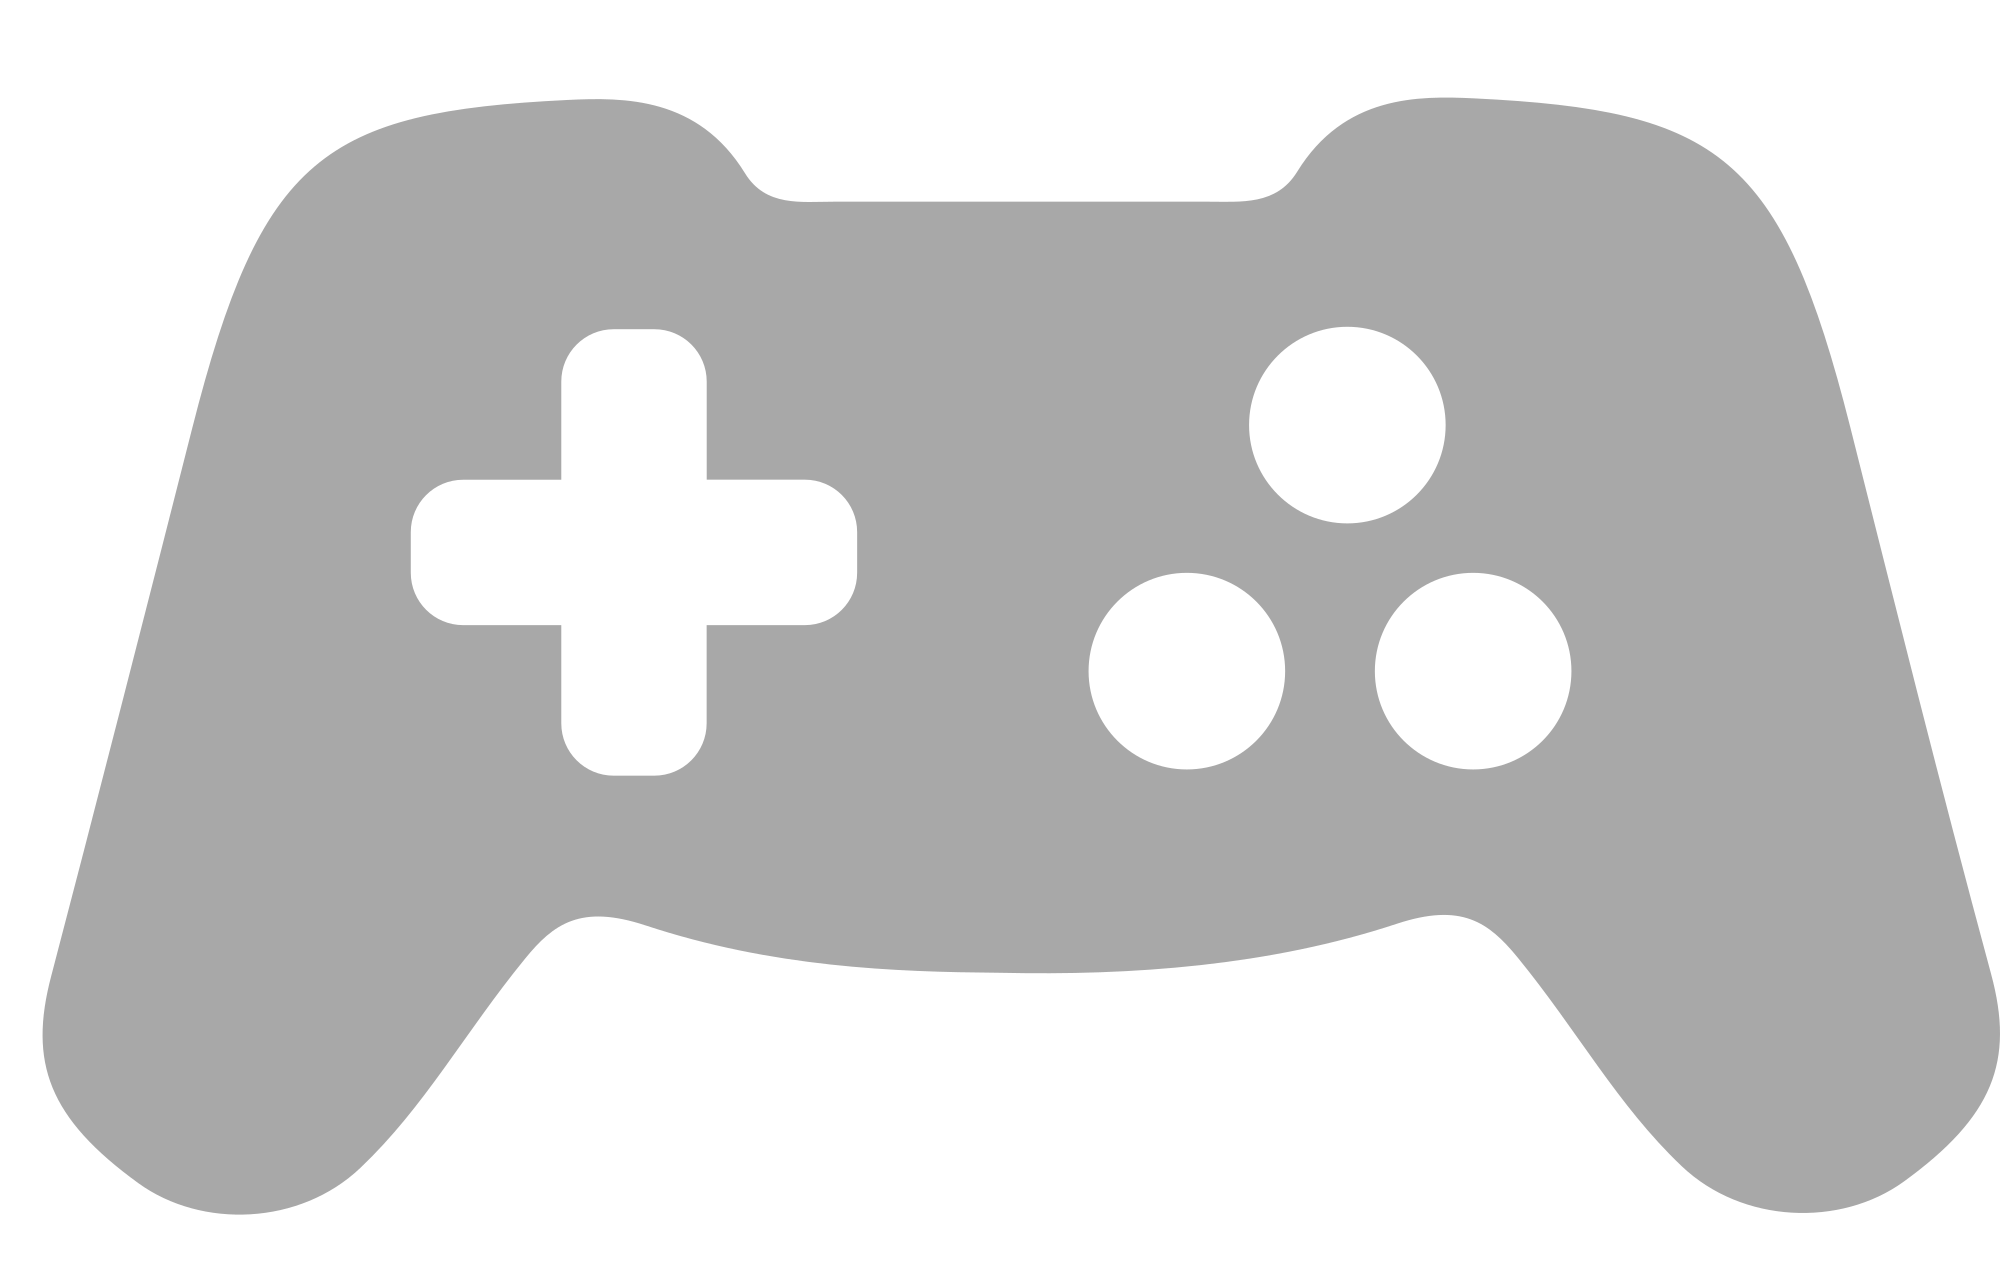 Video game logo png. File wikiproject games controller